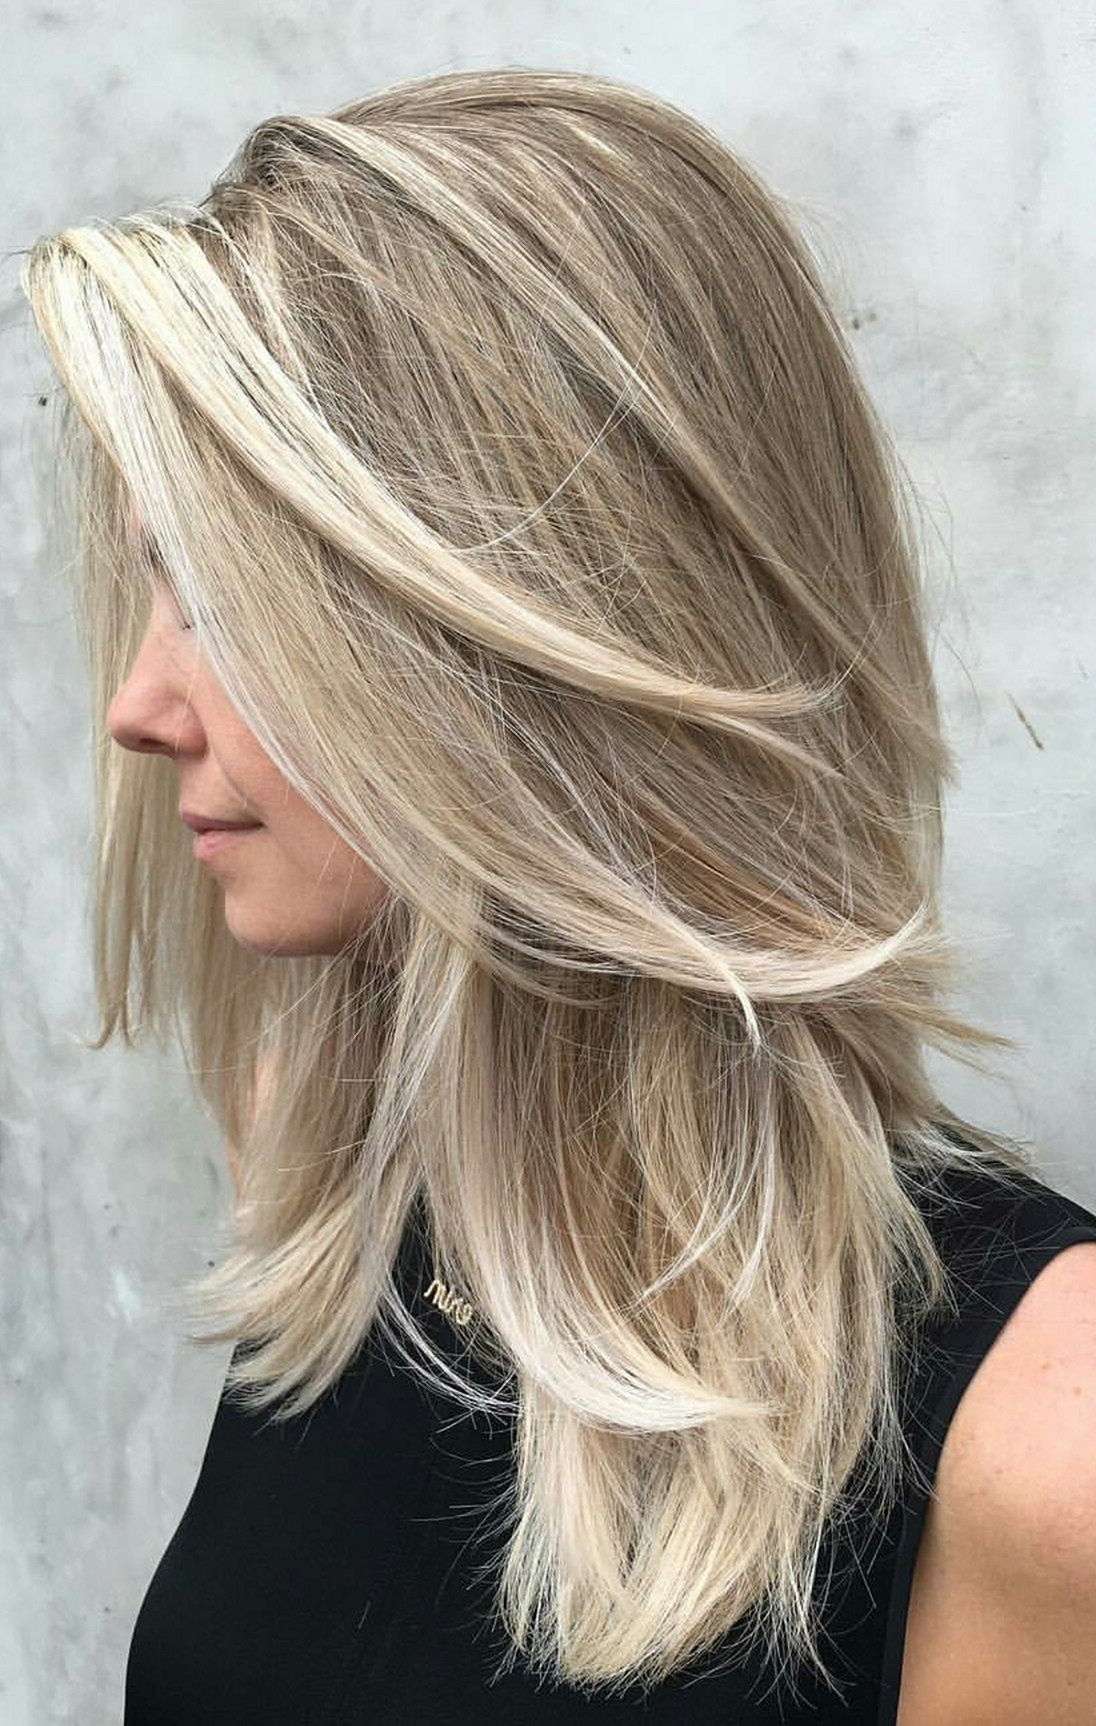 47 Adorable Cool Women's Medium Hair Ideas To Try This Summer With Regard To Most Popular Summer Medium Hairstyles (View 5 of 20)